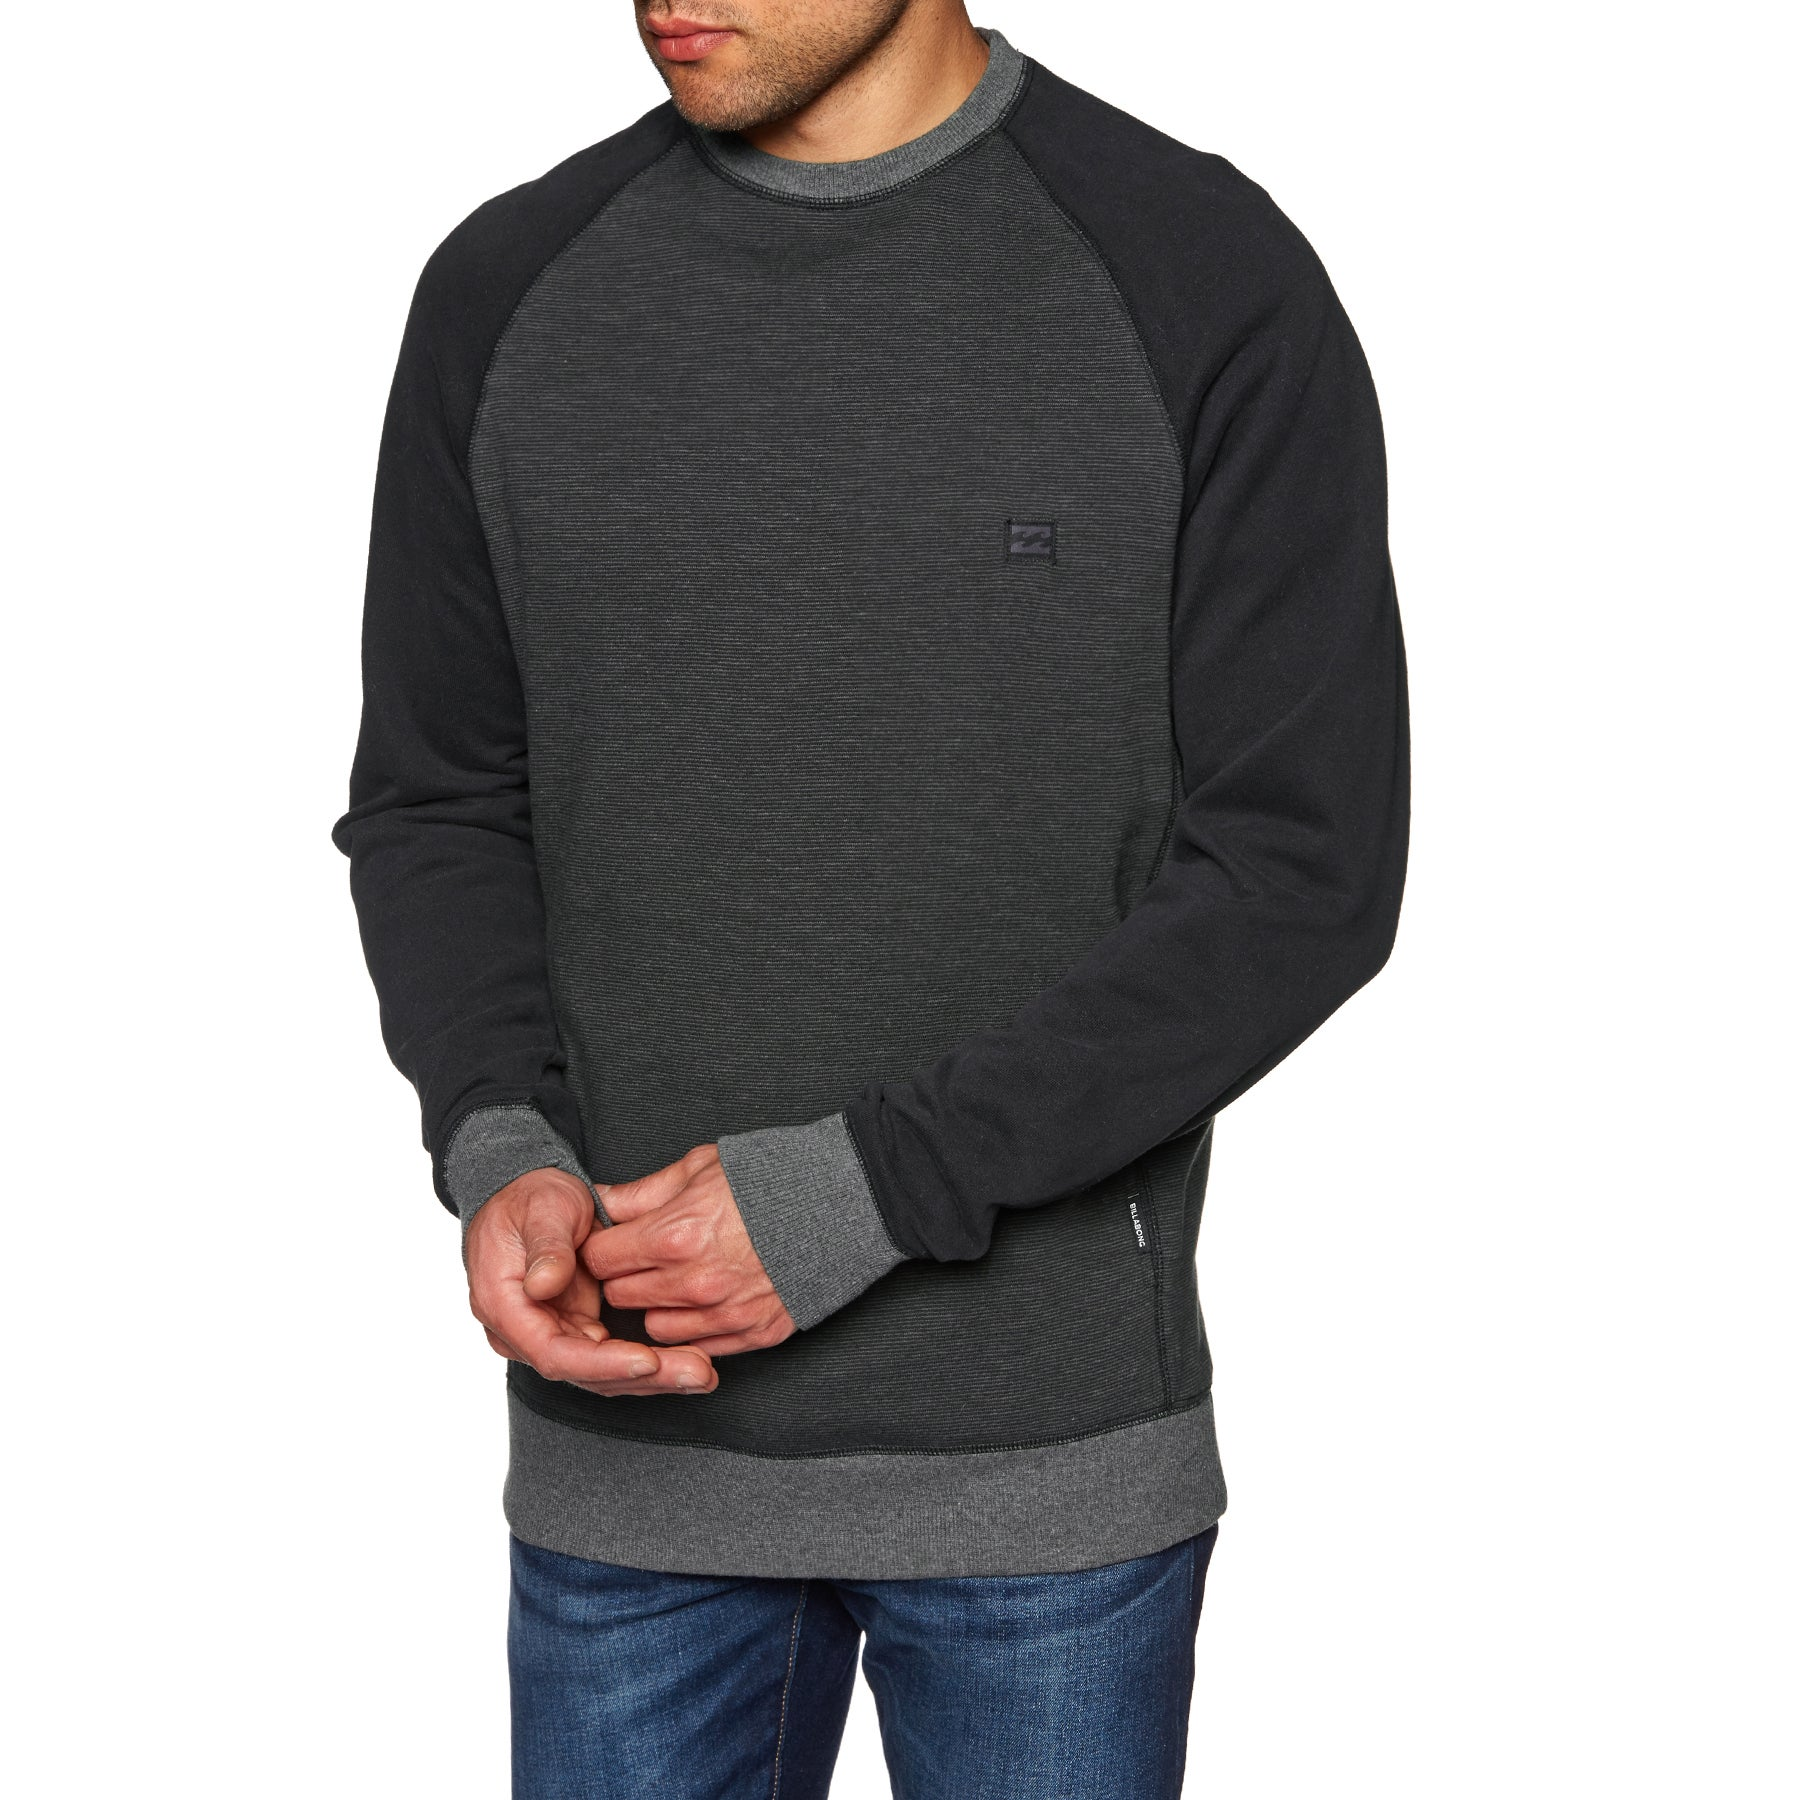 Billabong Balance Crew Sweater - Black